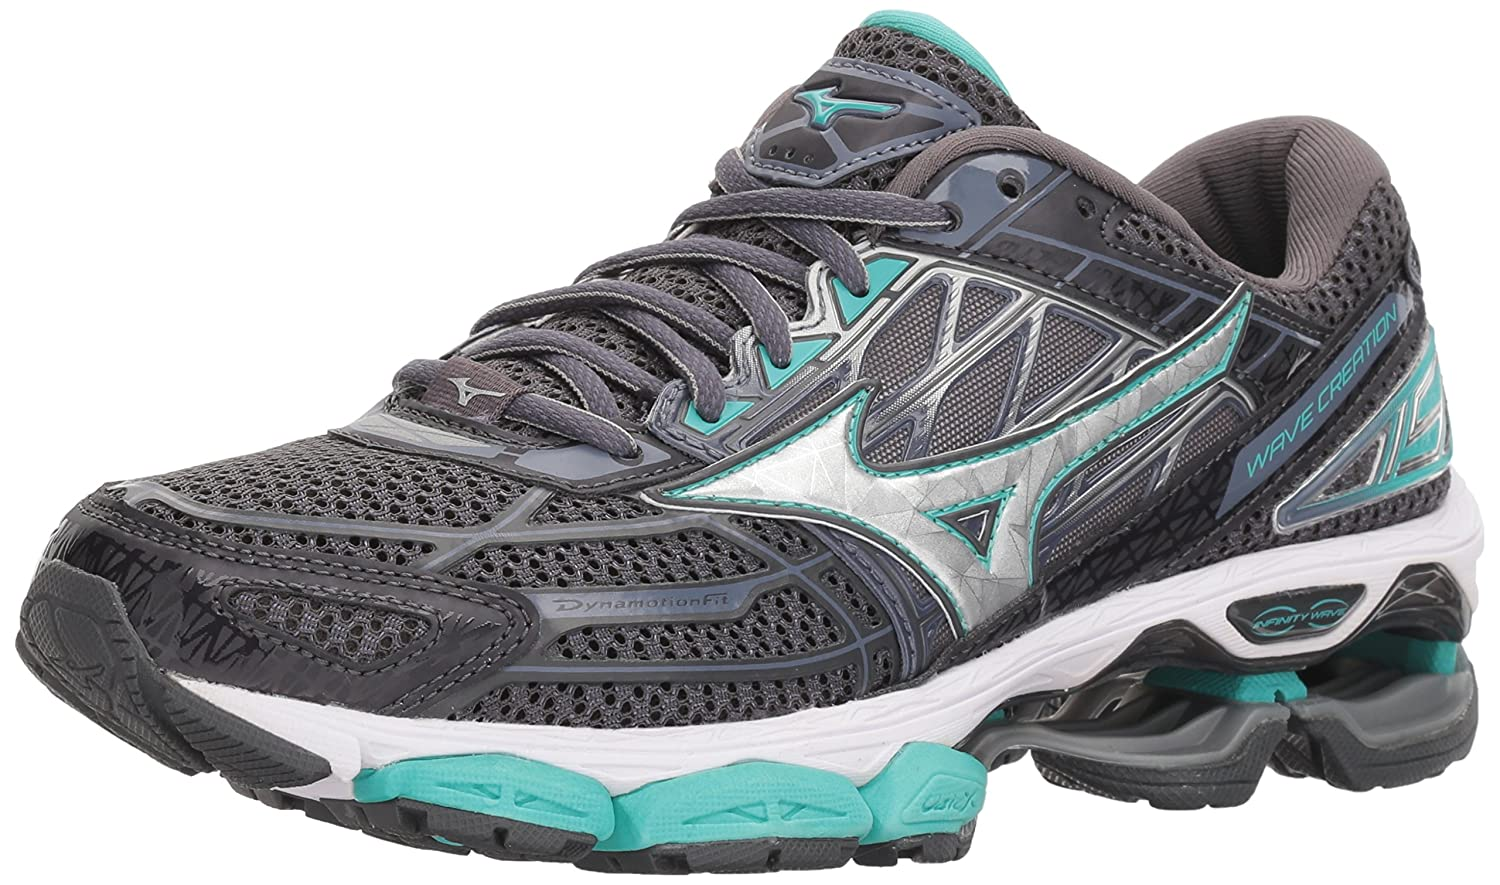 08df8ee75d9c4 Mizuno Running Wave Creation 19 Shoes B072DRMV2C B(M) US|Magnet ...